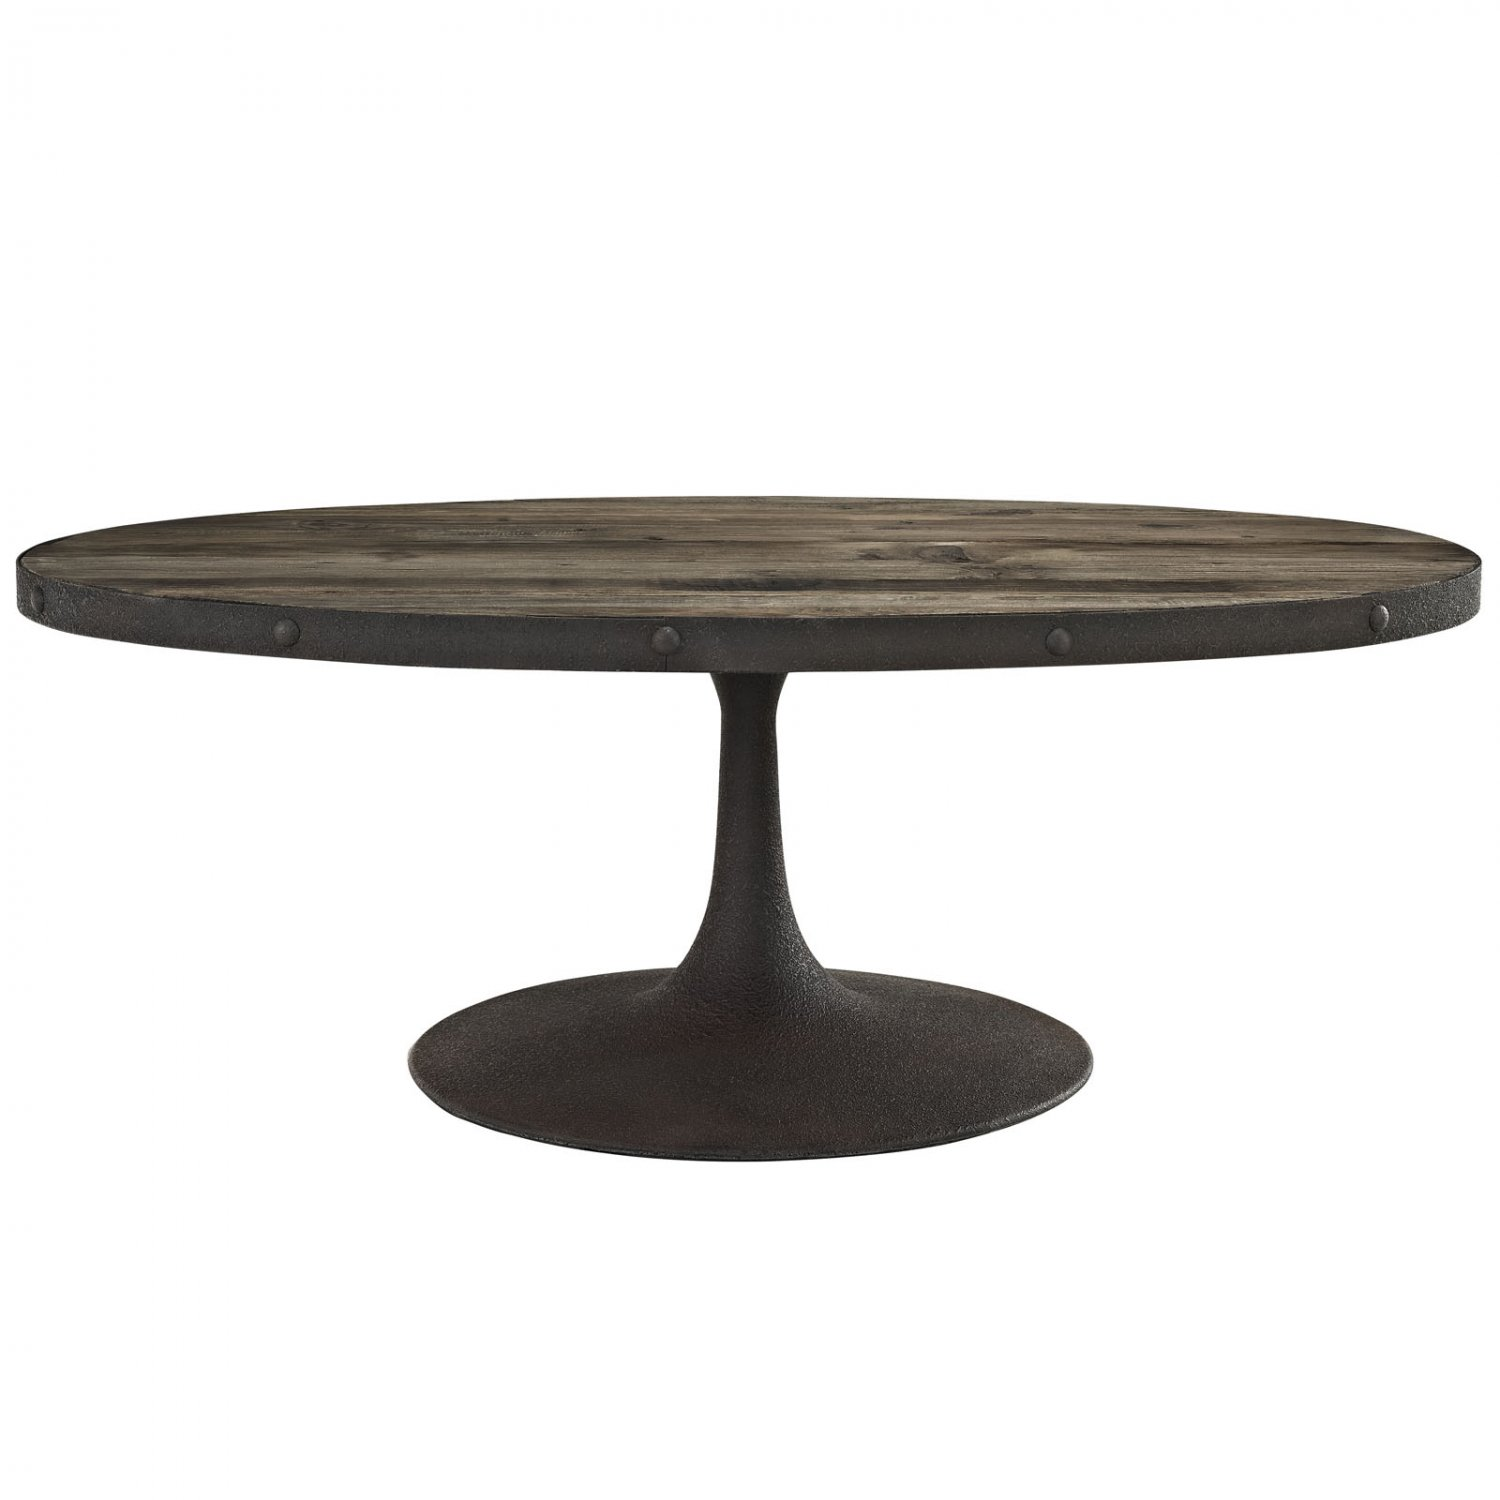 Maia Oval Industrial Coffee Table